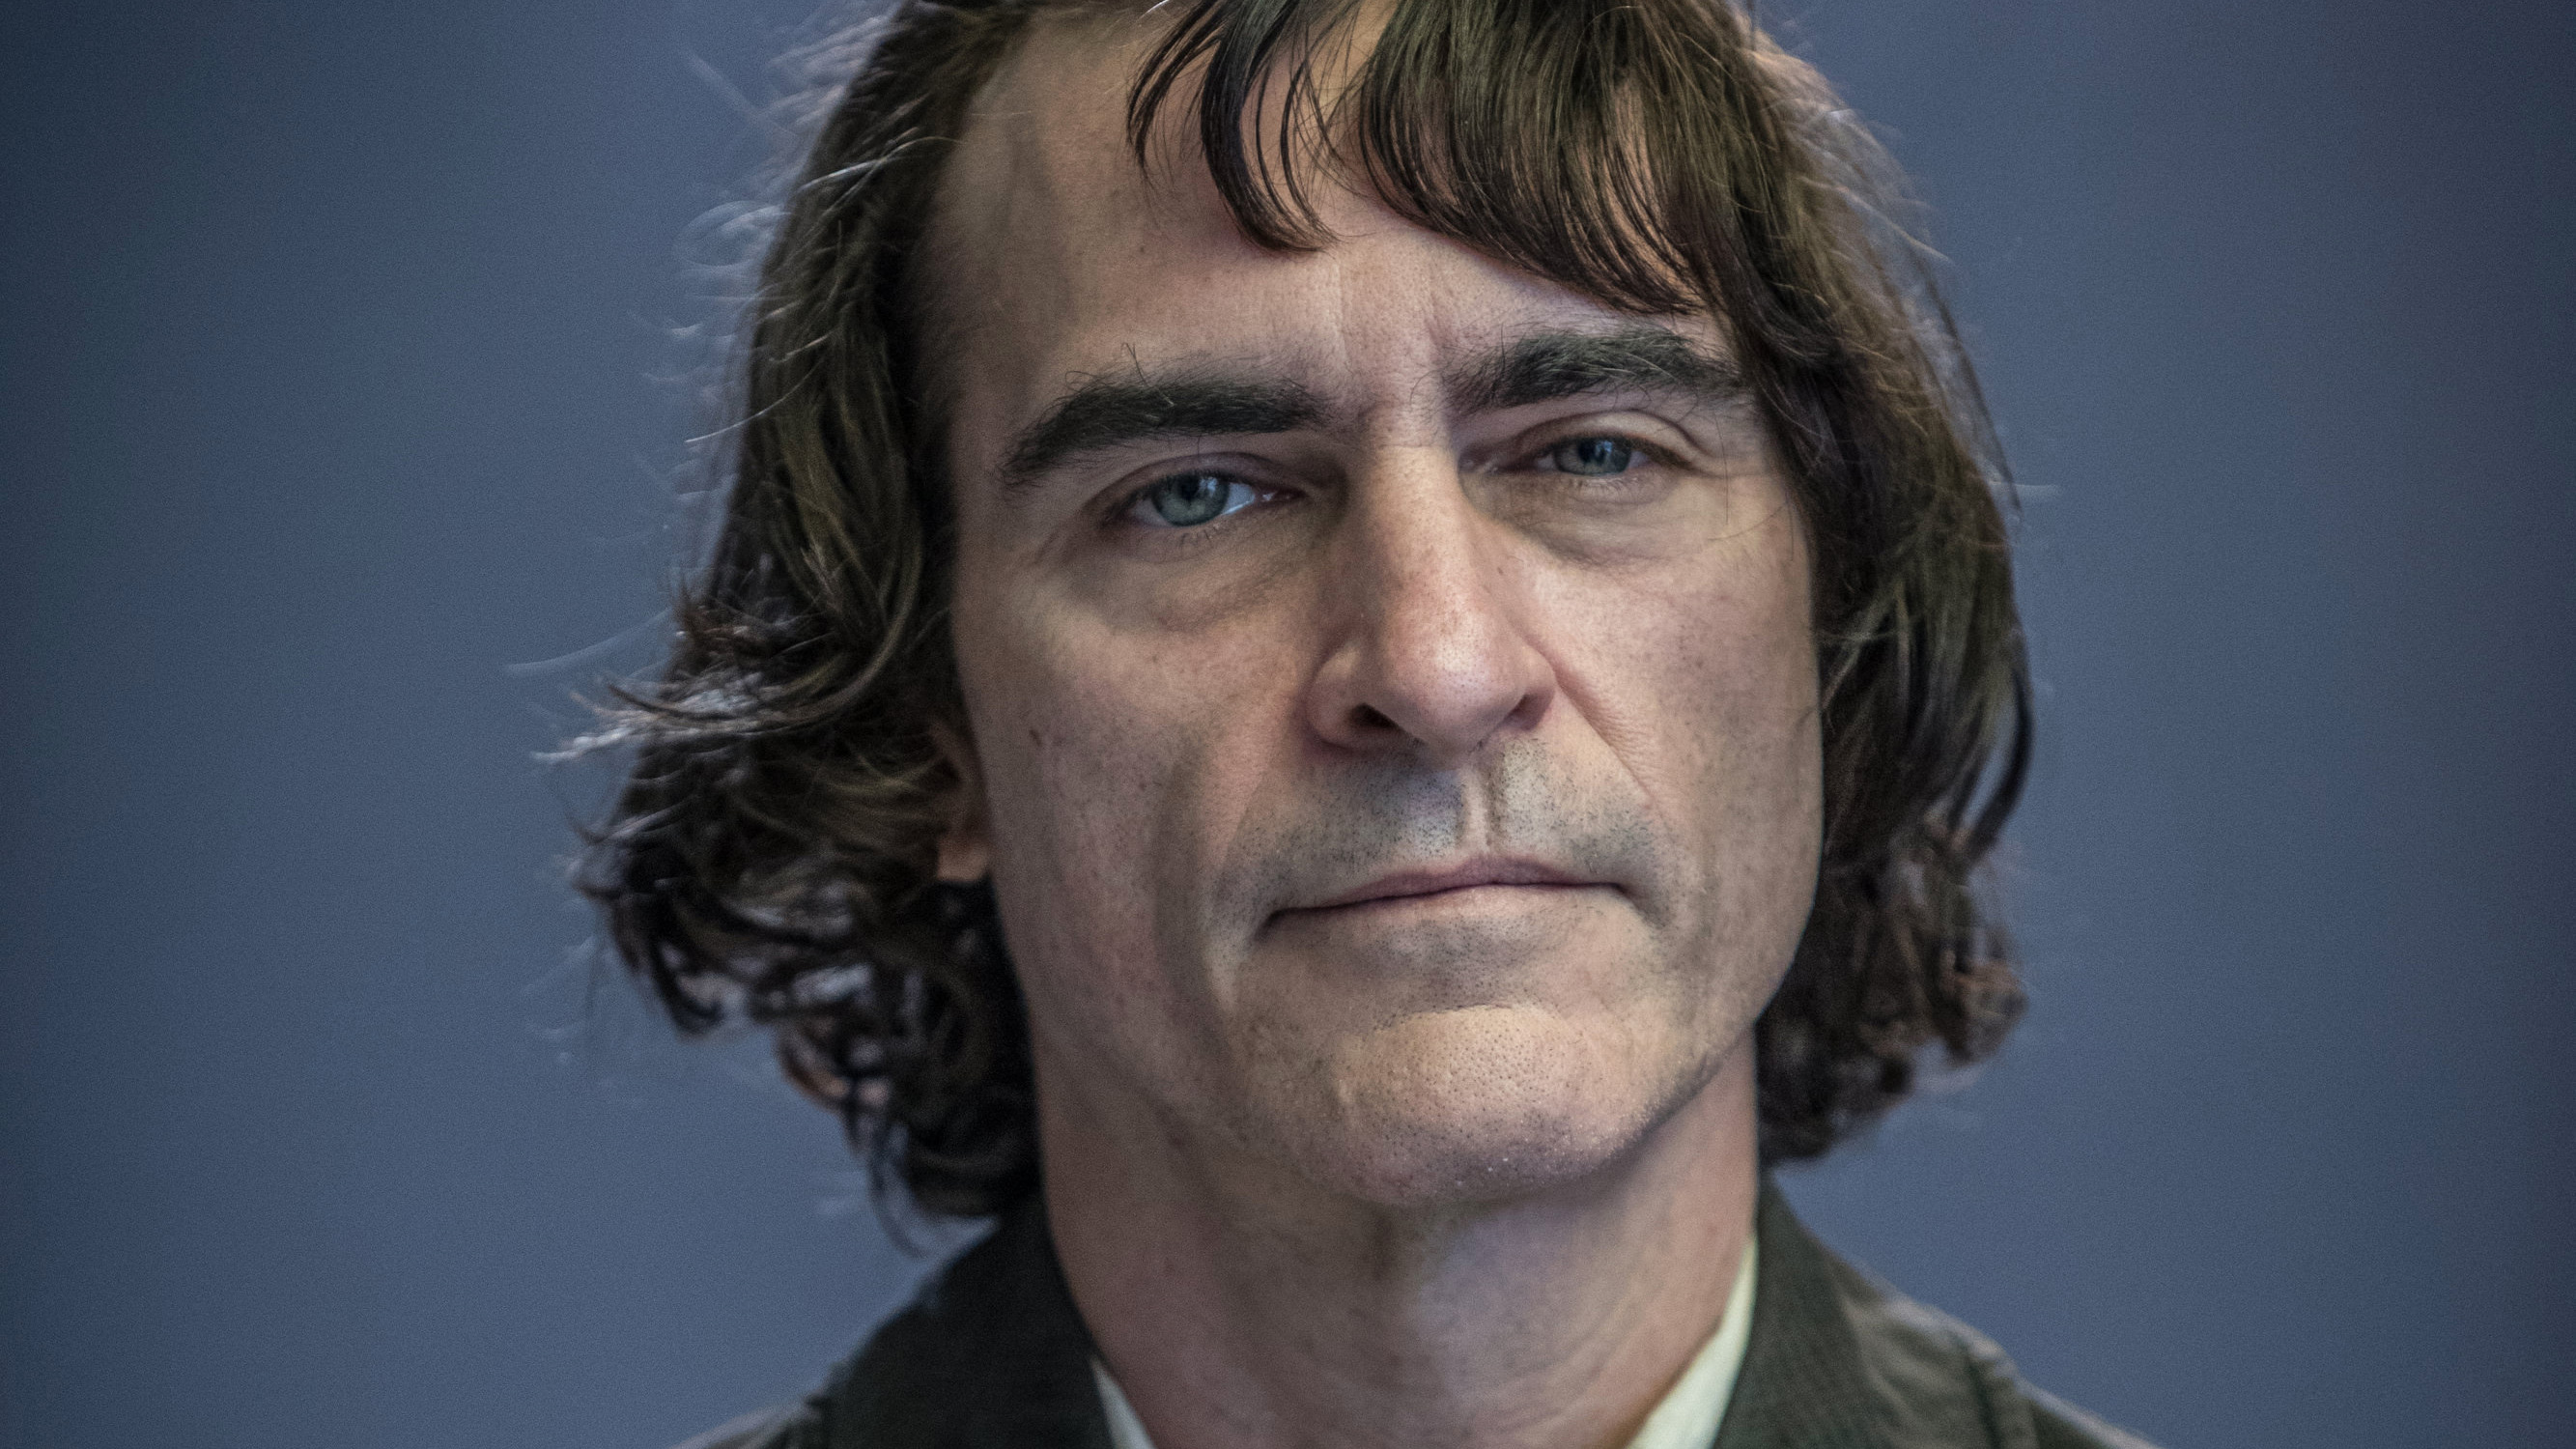 """Joaquin Phoenix as Arthur Fleck in """"Joker,"""" from Warner Bros. Pictures, Village Roadshow Pictures and BRON Creative. A Warner Bros. Pictures release. Photo by Nikos Tavernise"""